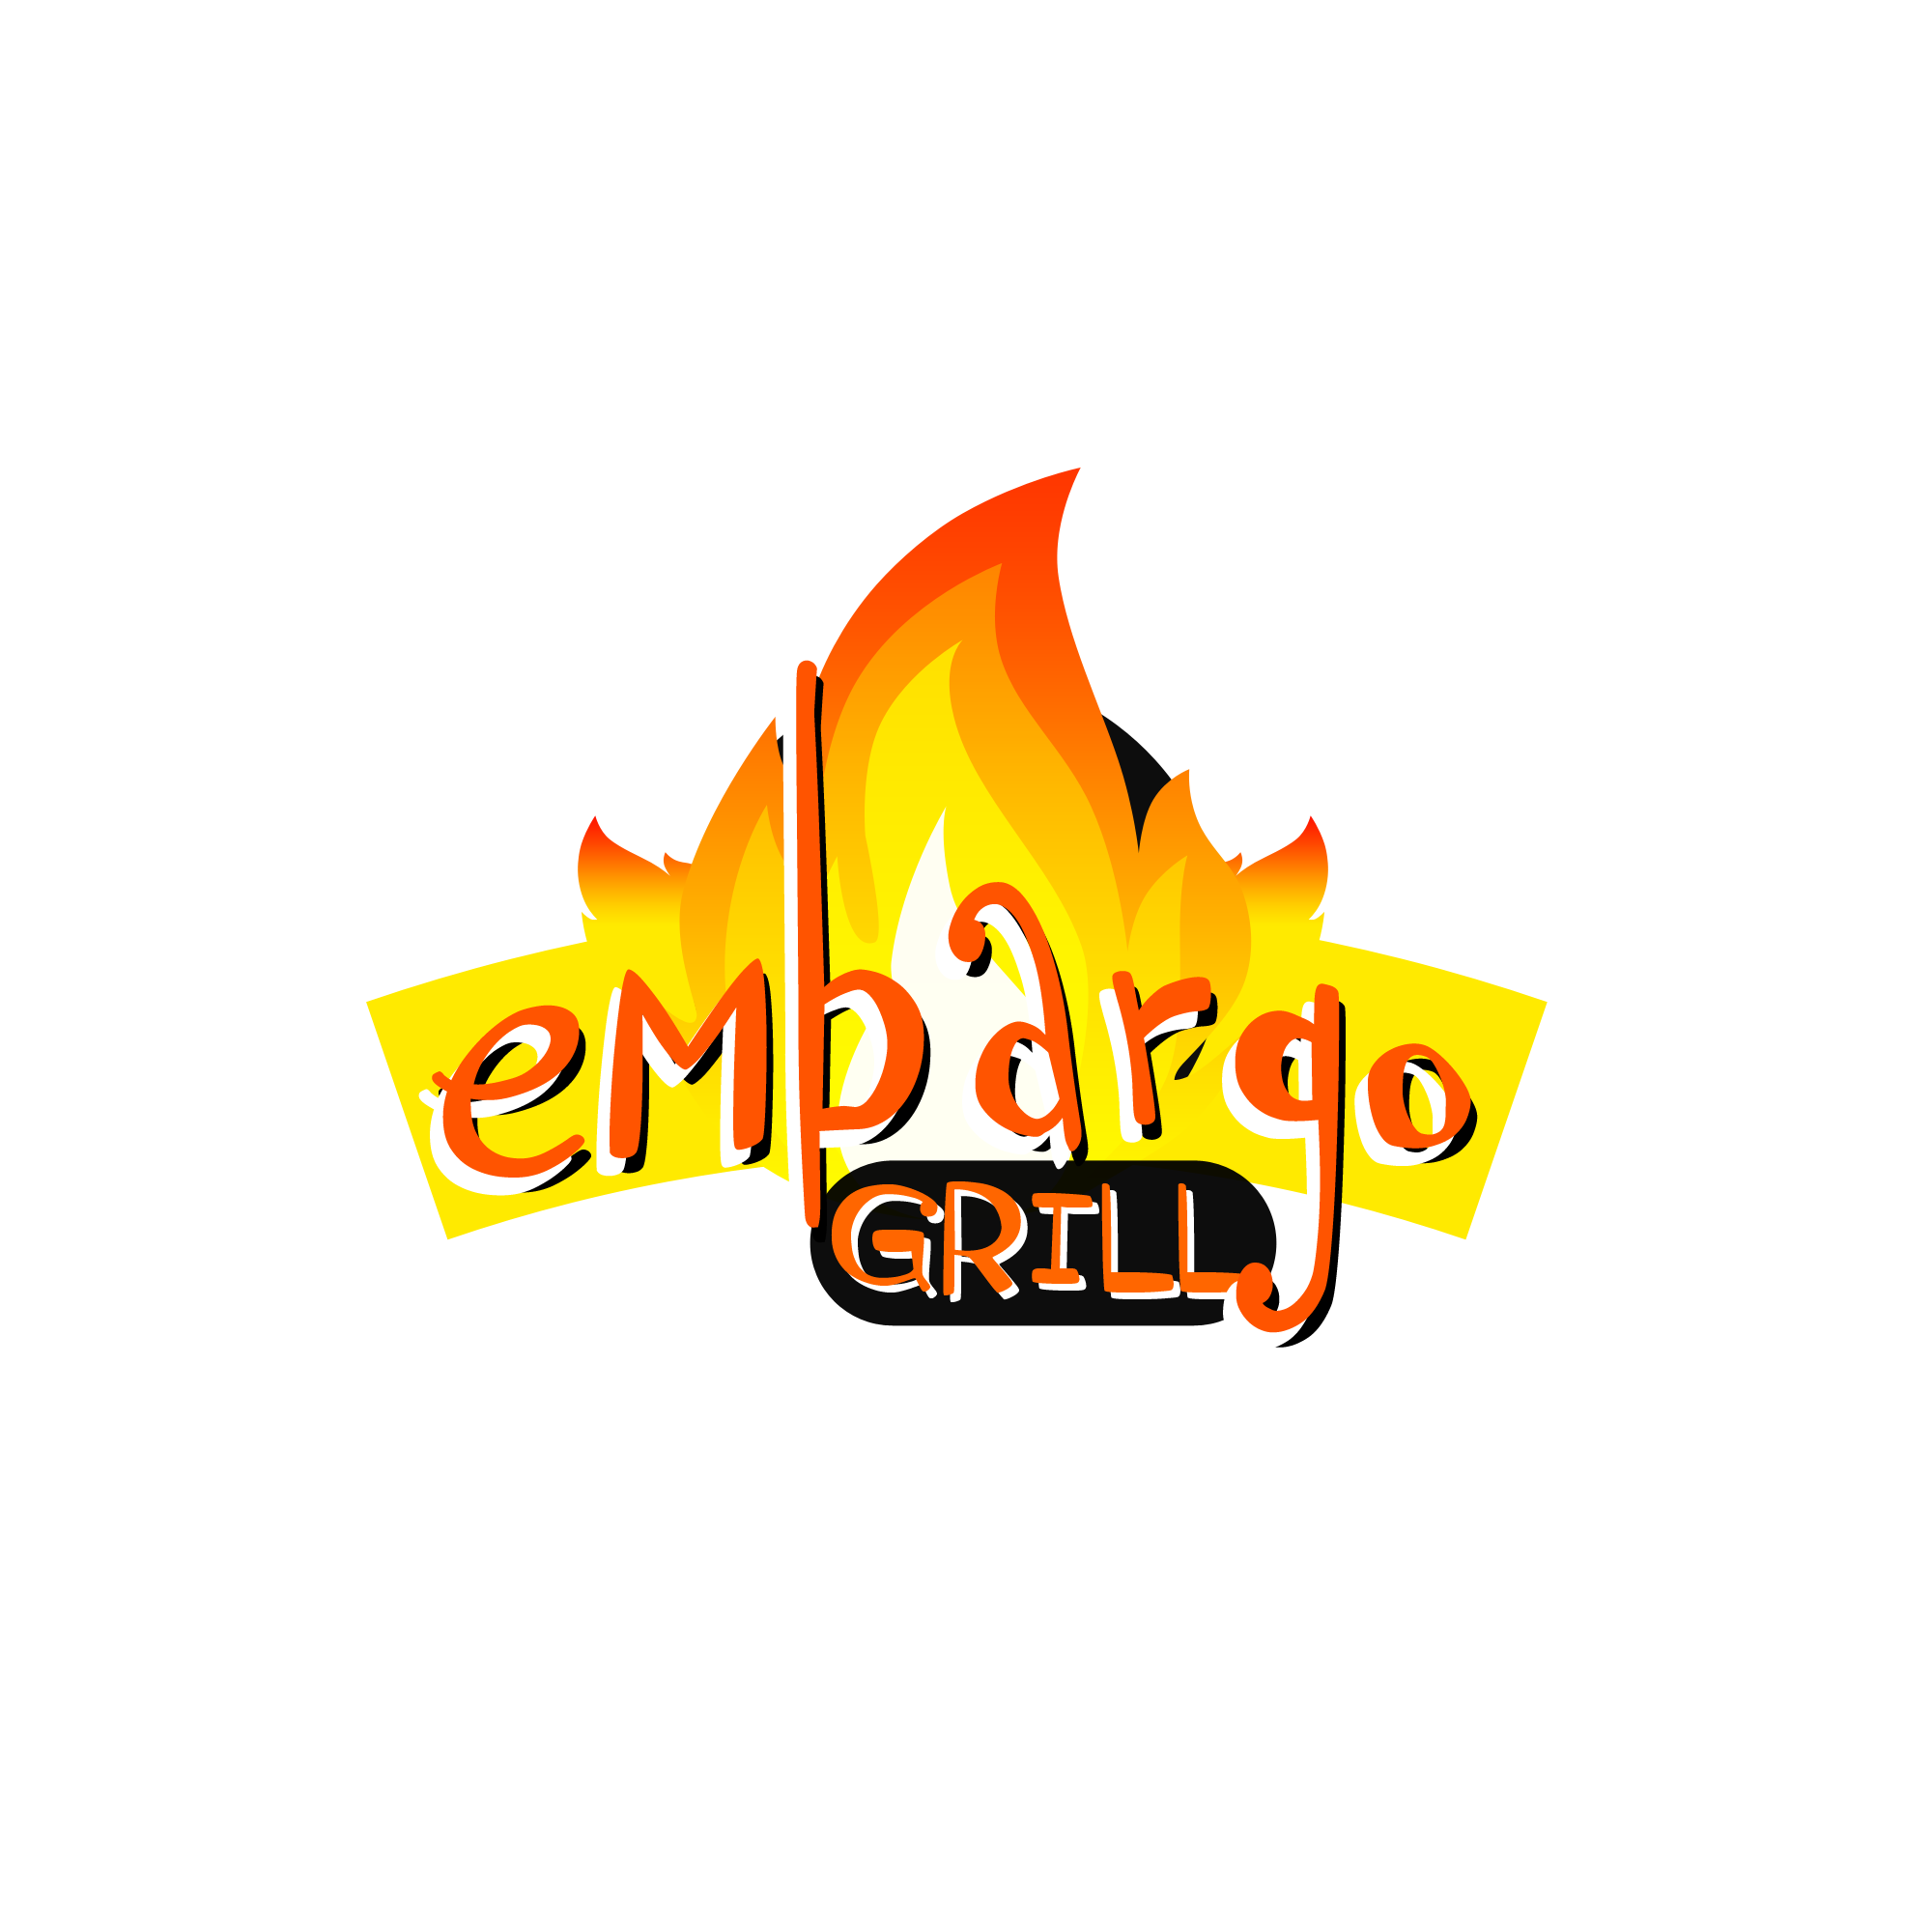 Logo Design by Kenneth Joel - Entry No. 40 in the Logo Design Contest Captivating Logo Design for Embargo Grill.